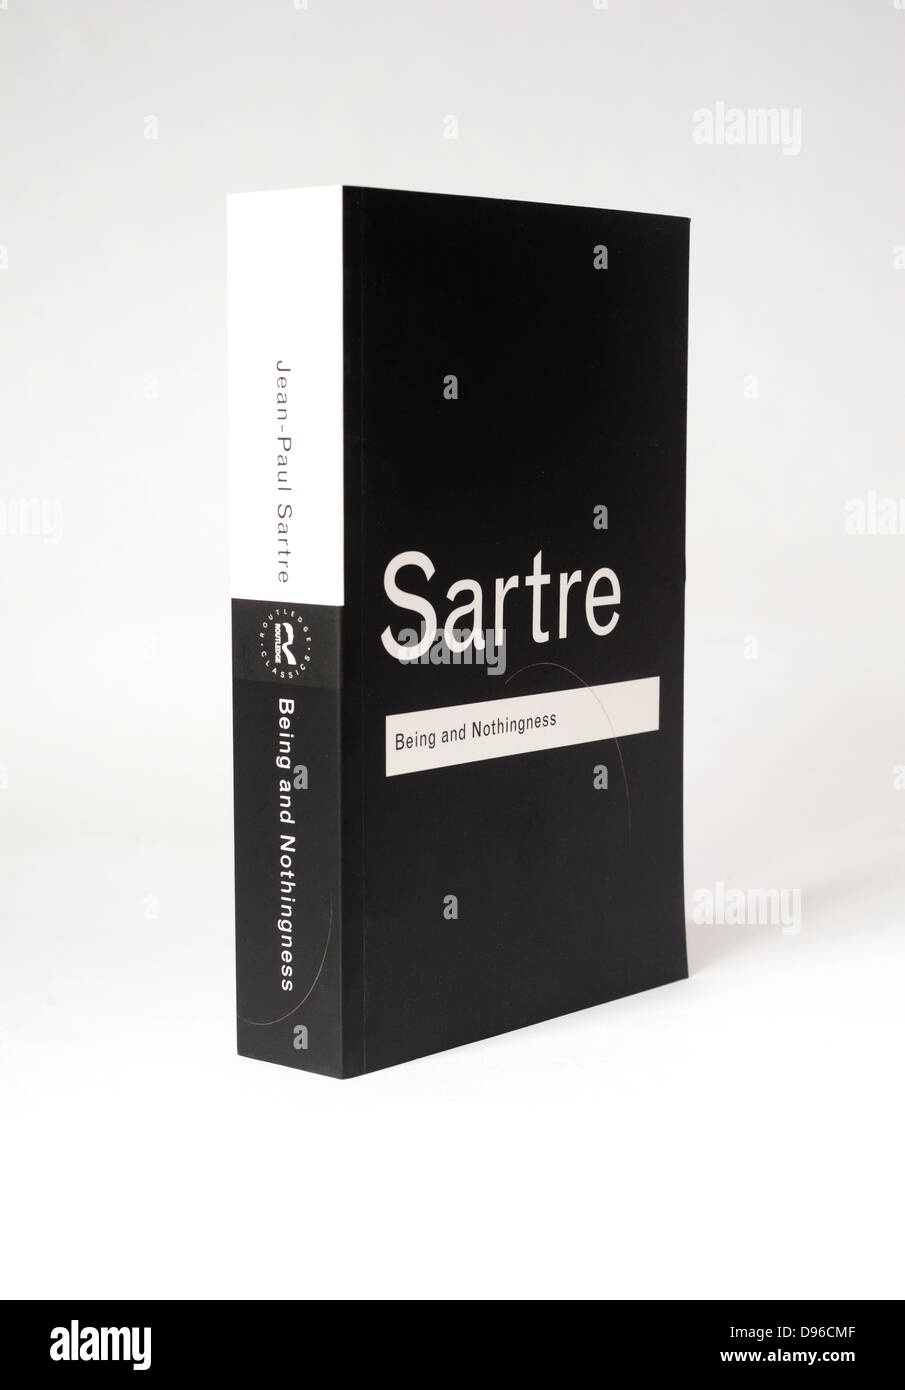 essay on sartre being and nothingness The longer essay entitled just existentialism in book is actually a translation of  an  the remainings parts are excerpts from being and nothingness , sartre's.